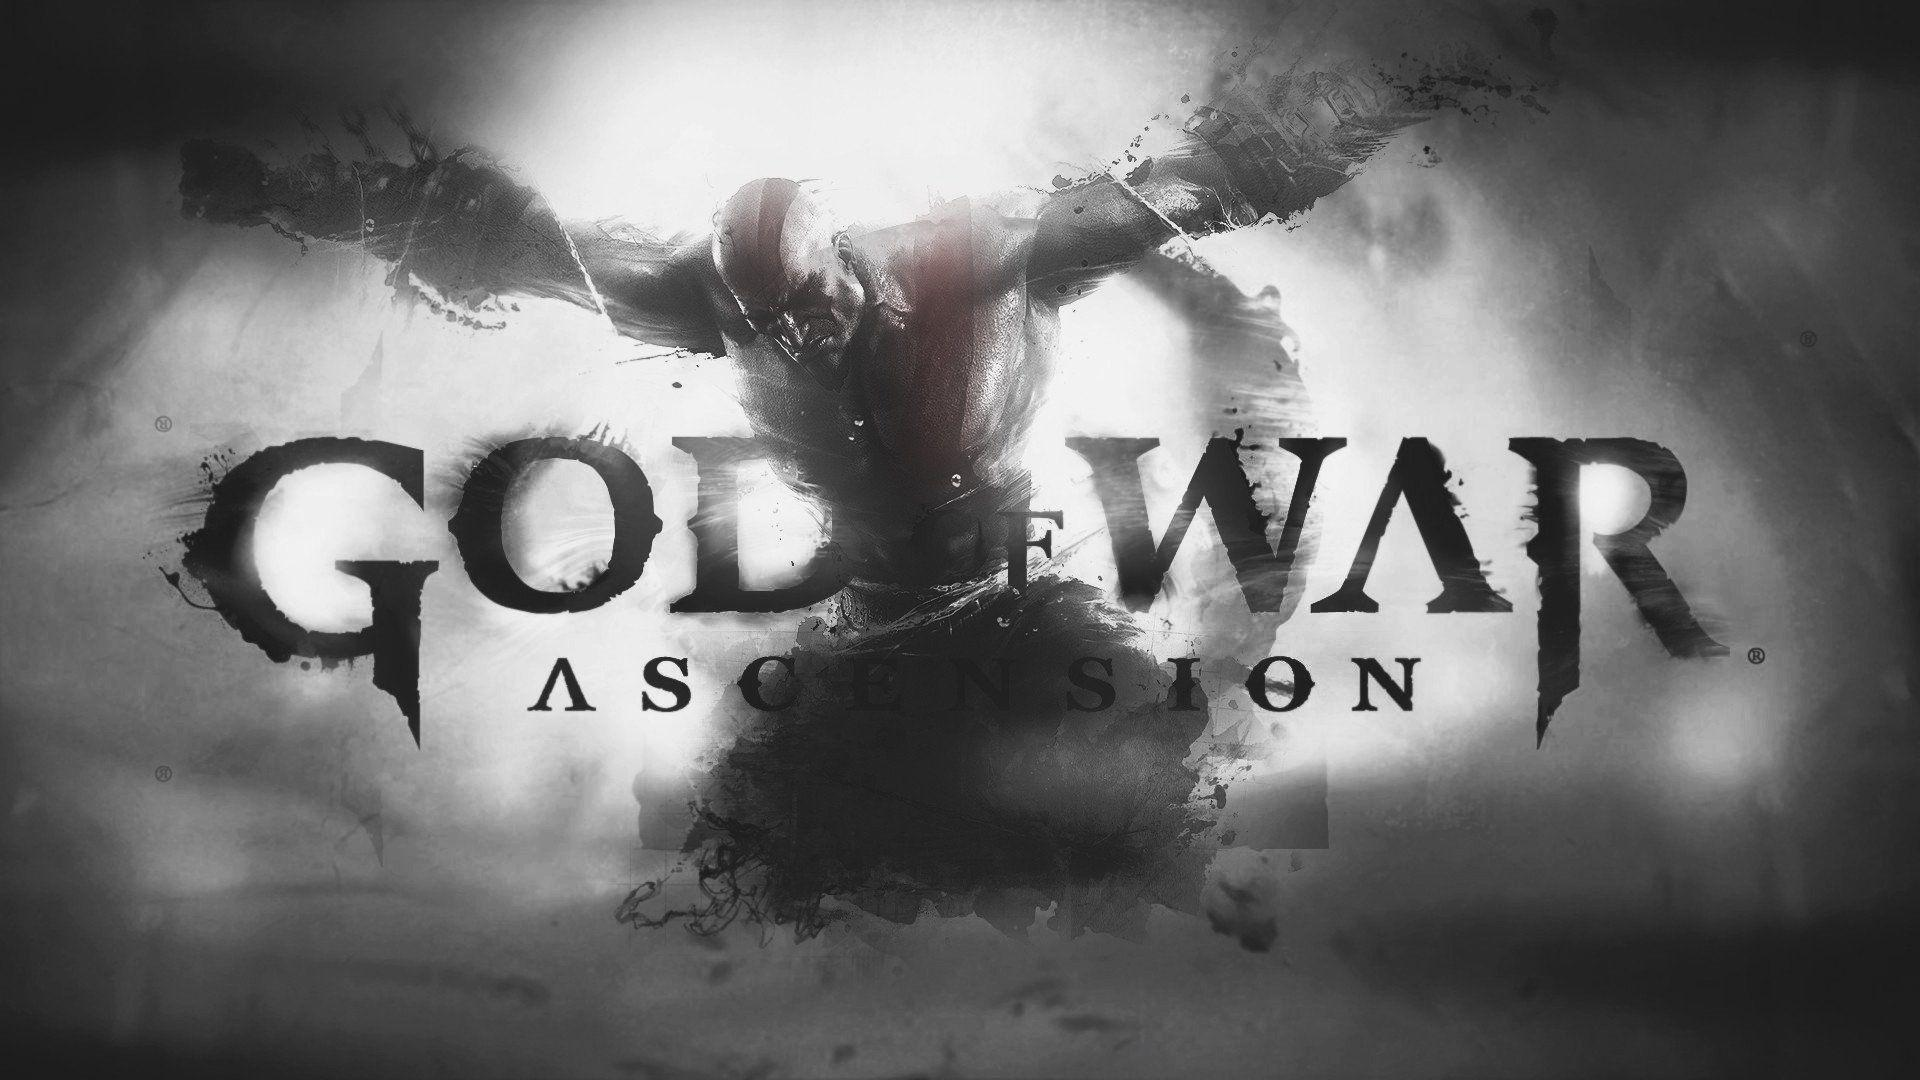 God of war ascension wallpapers wallpaper cave 38 god of war ascension hd wallpapers backgrounds wallpaper abyss voltagebd Image collections